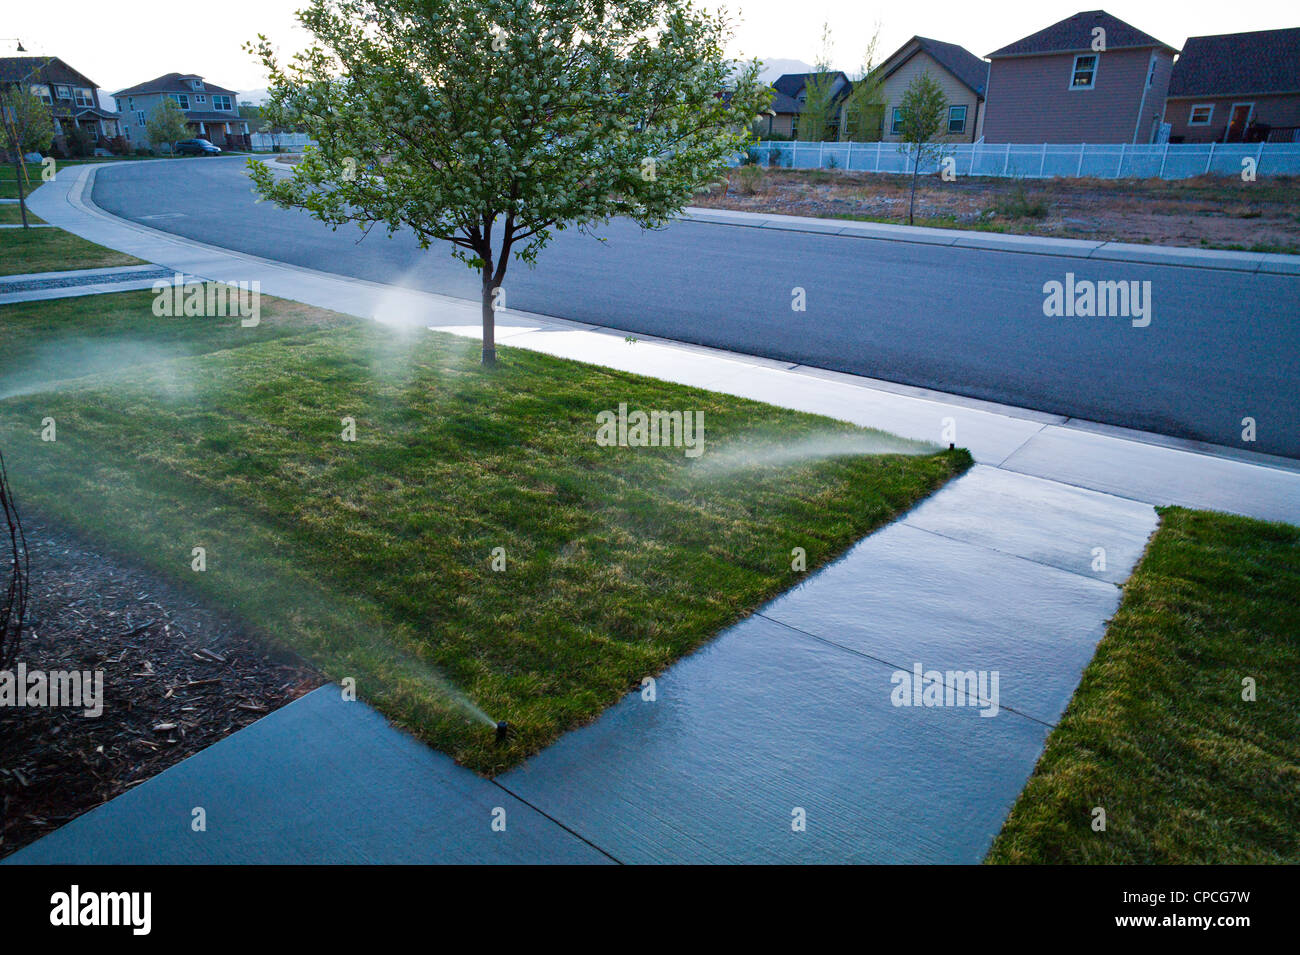 Sunset colors reflect on a wet sidewalk. Automated irrigation system waters the grass lawn on the property of a - Stock Image